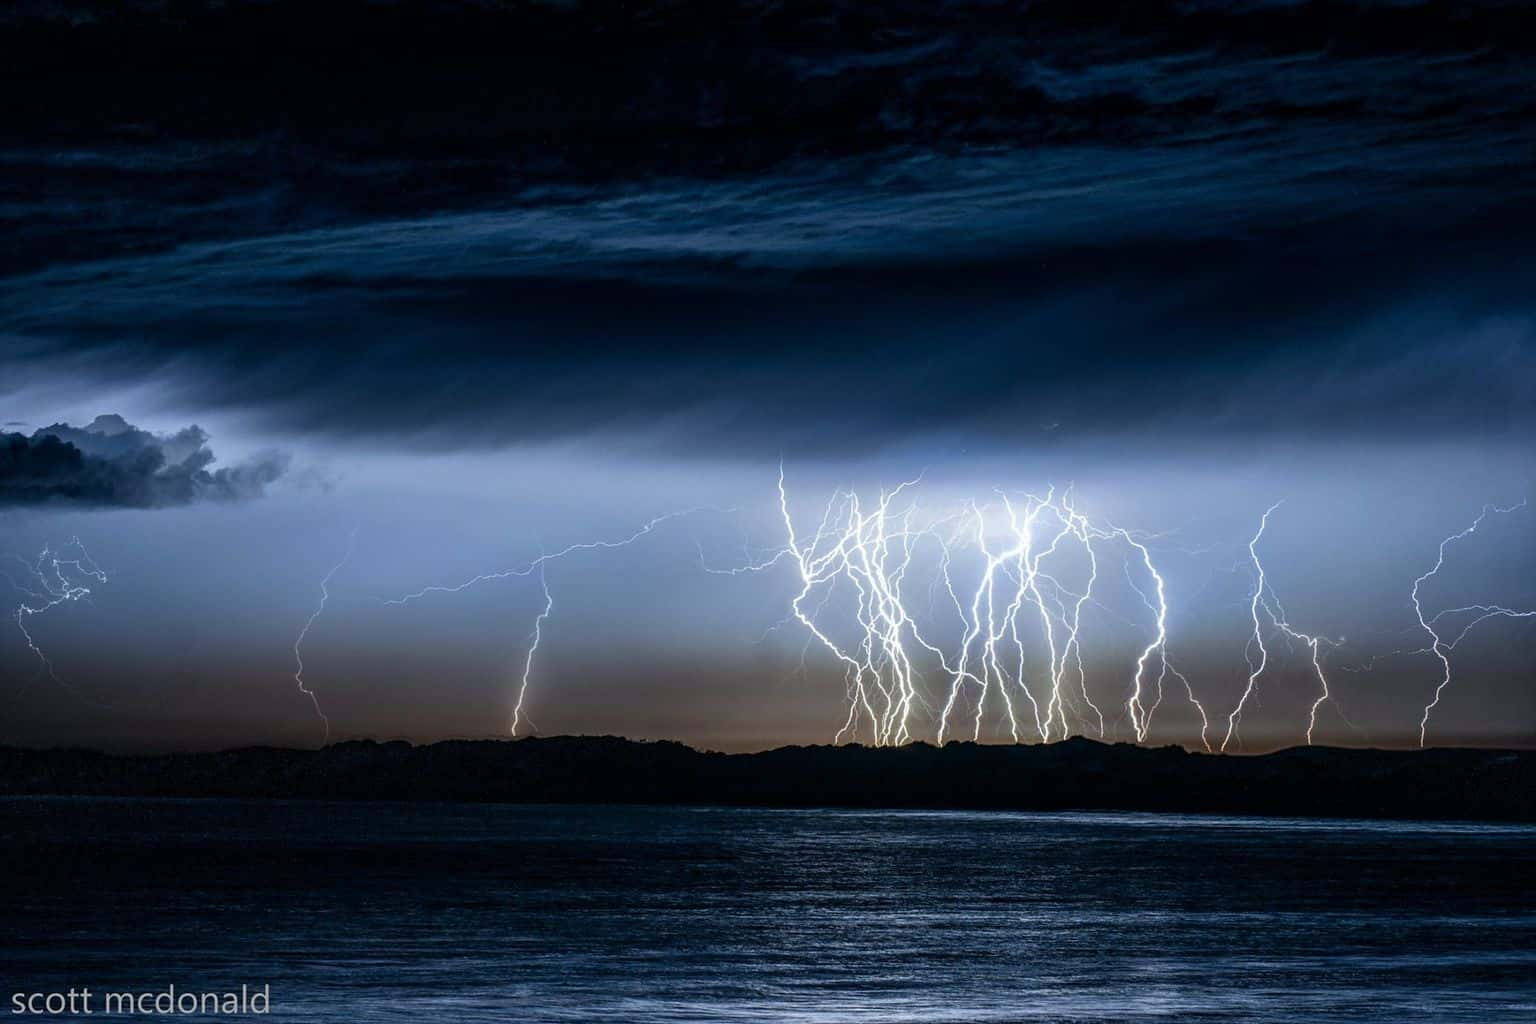 the last storm of the season put on one hell of a show this is a stack of 6 shots which happend in a couple of minute